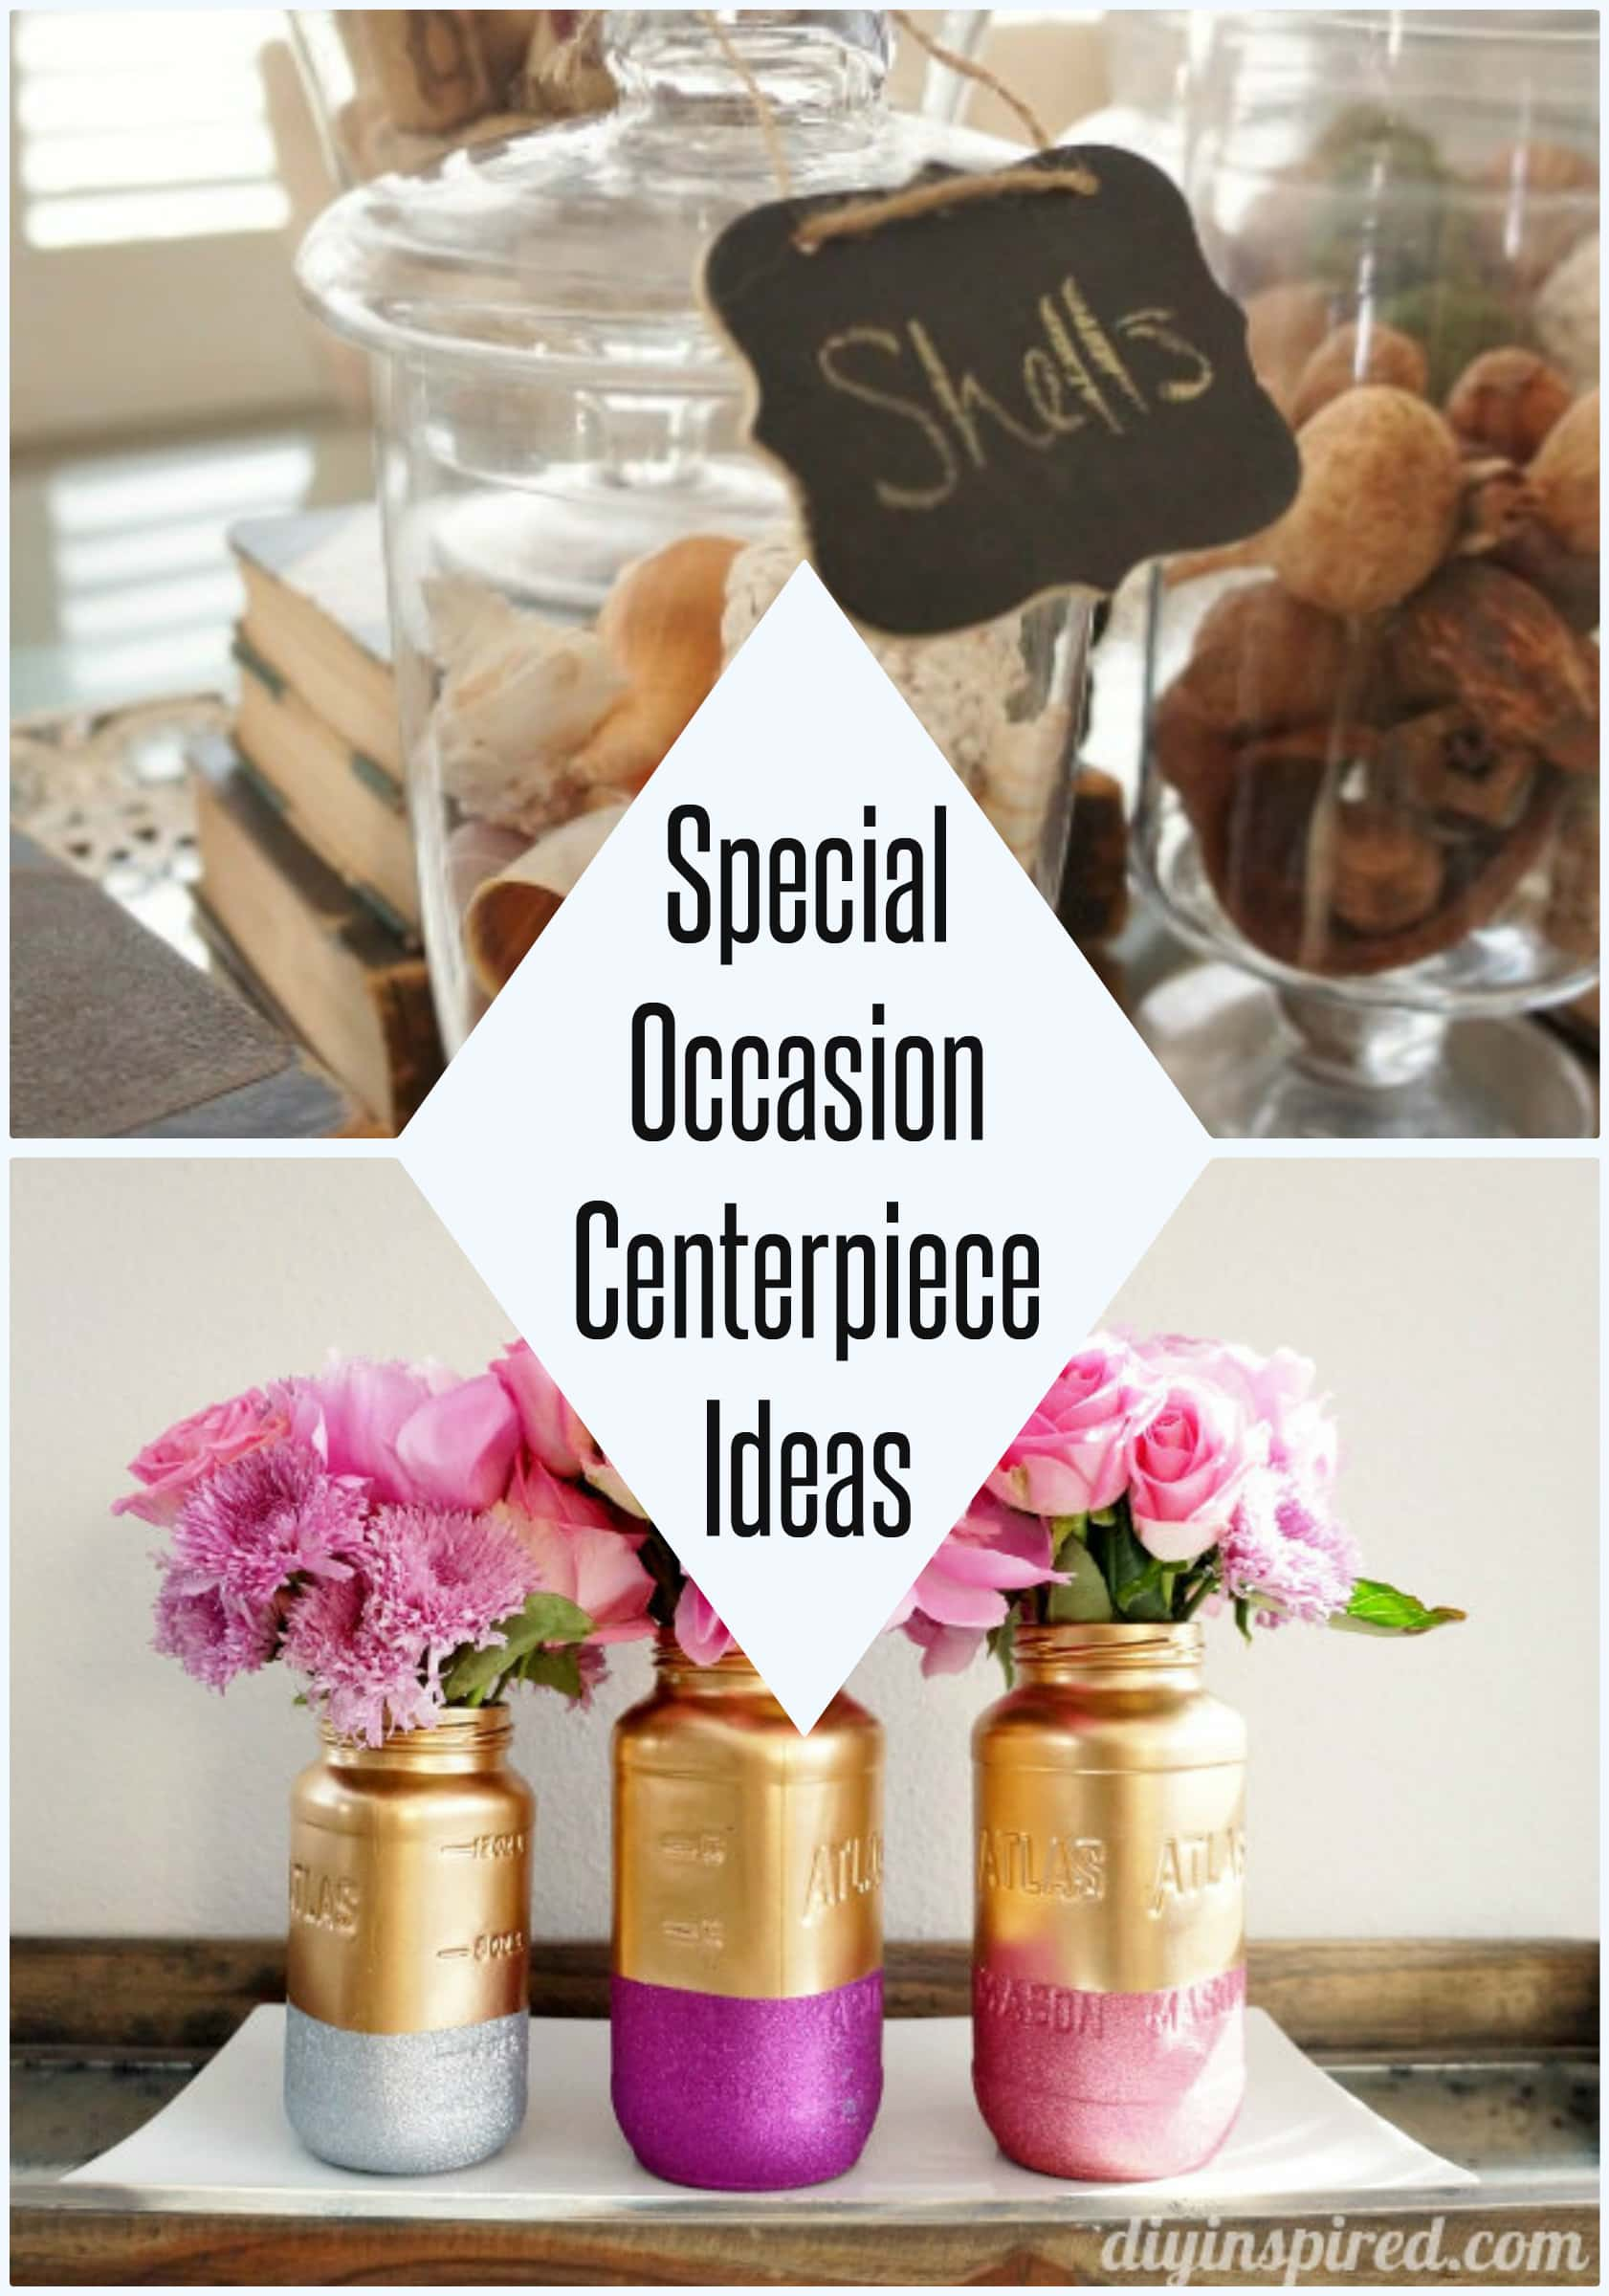 Special Occasion Centerpiece Ideas Diy Inspired